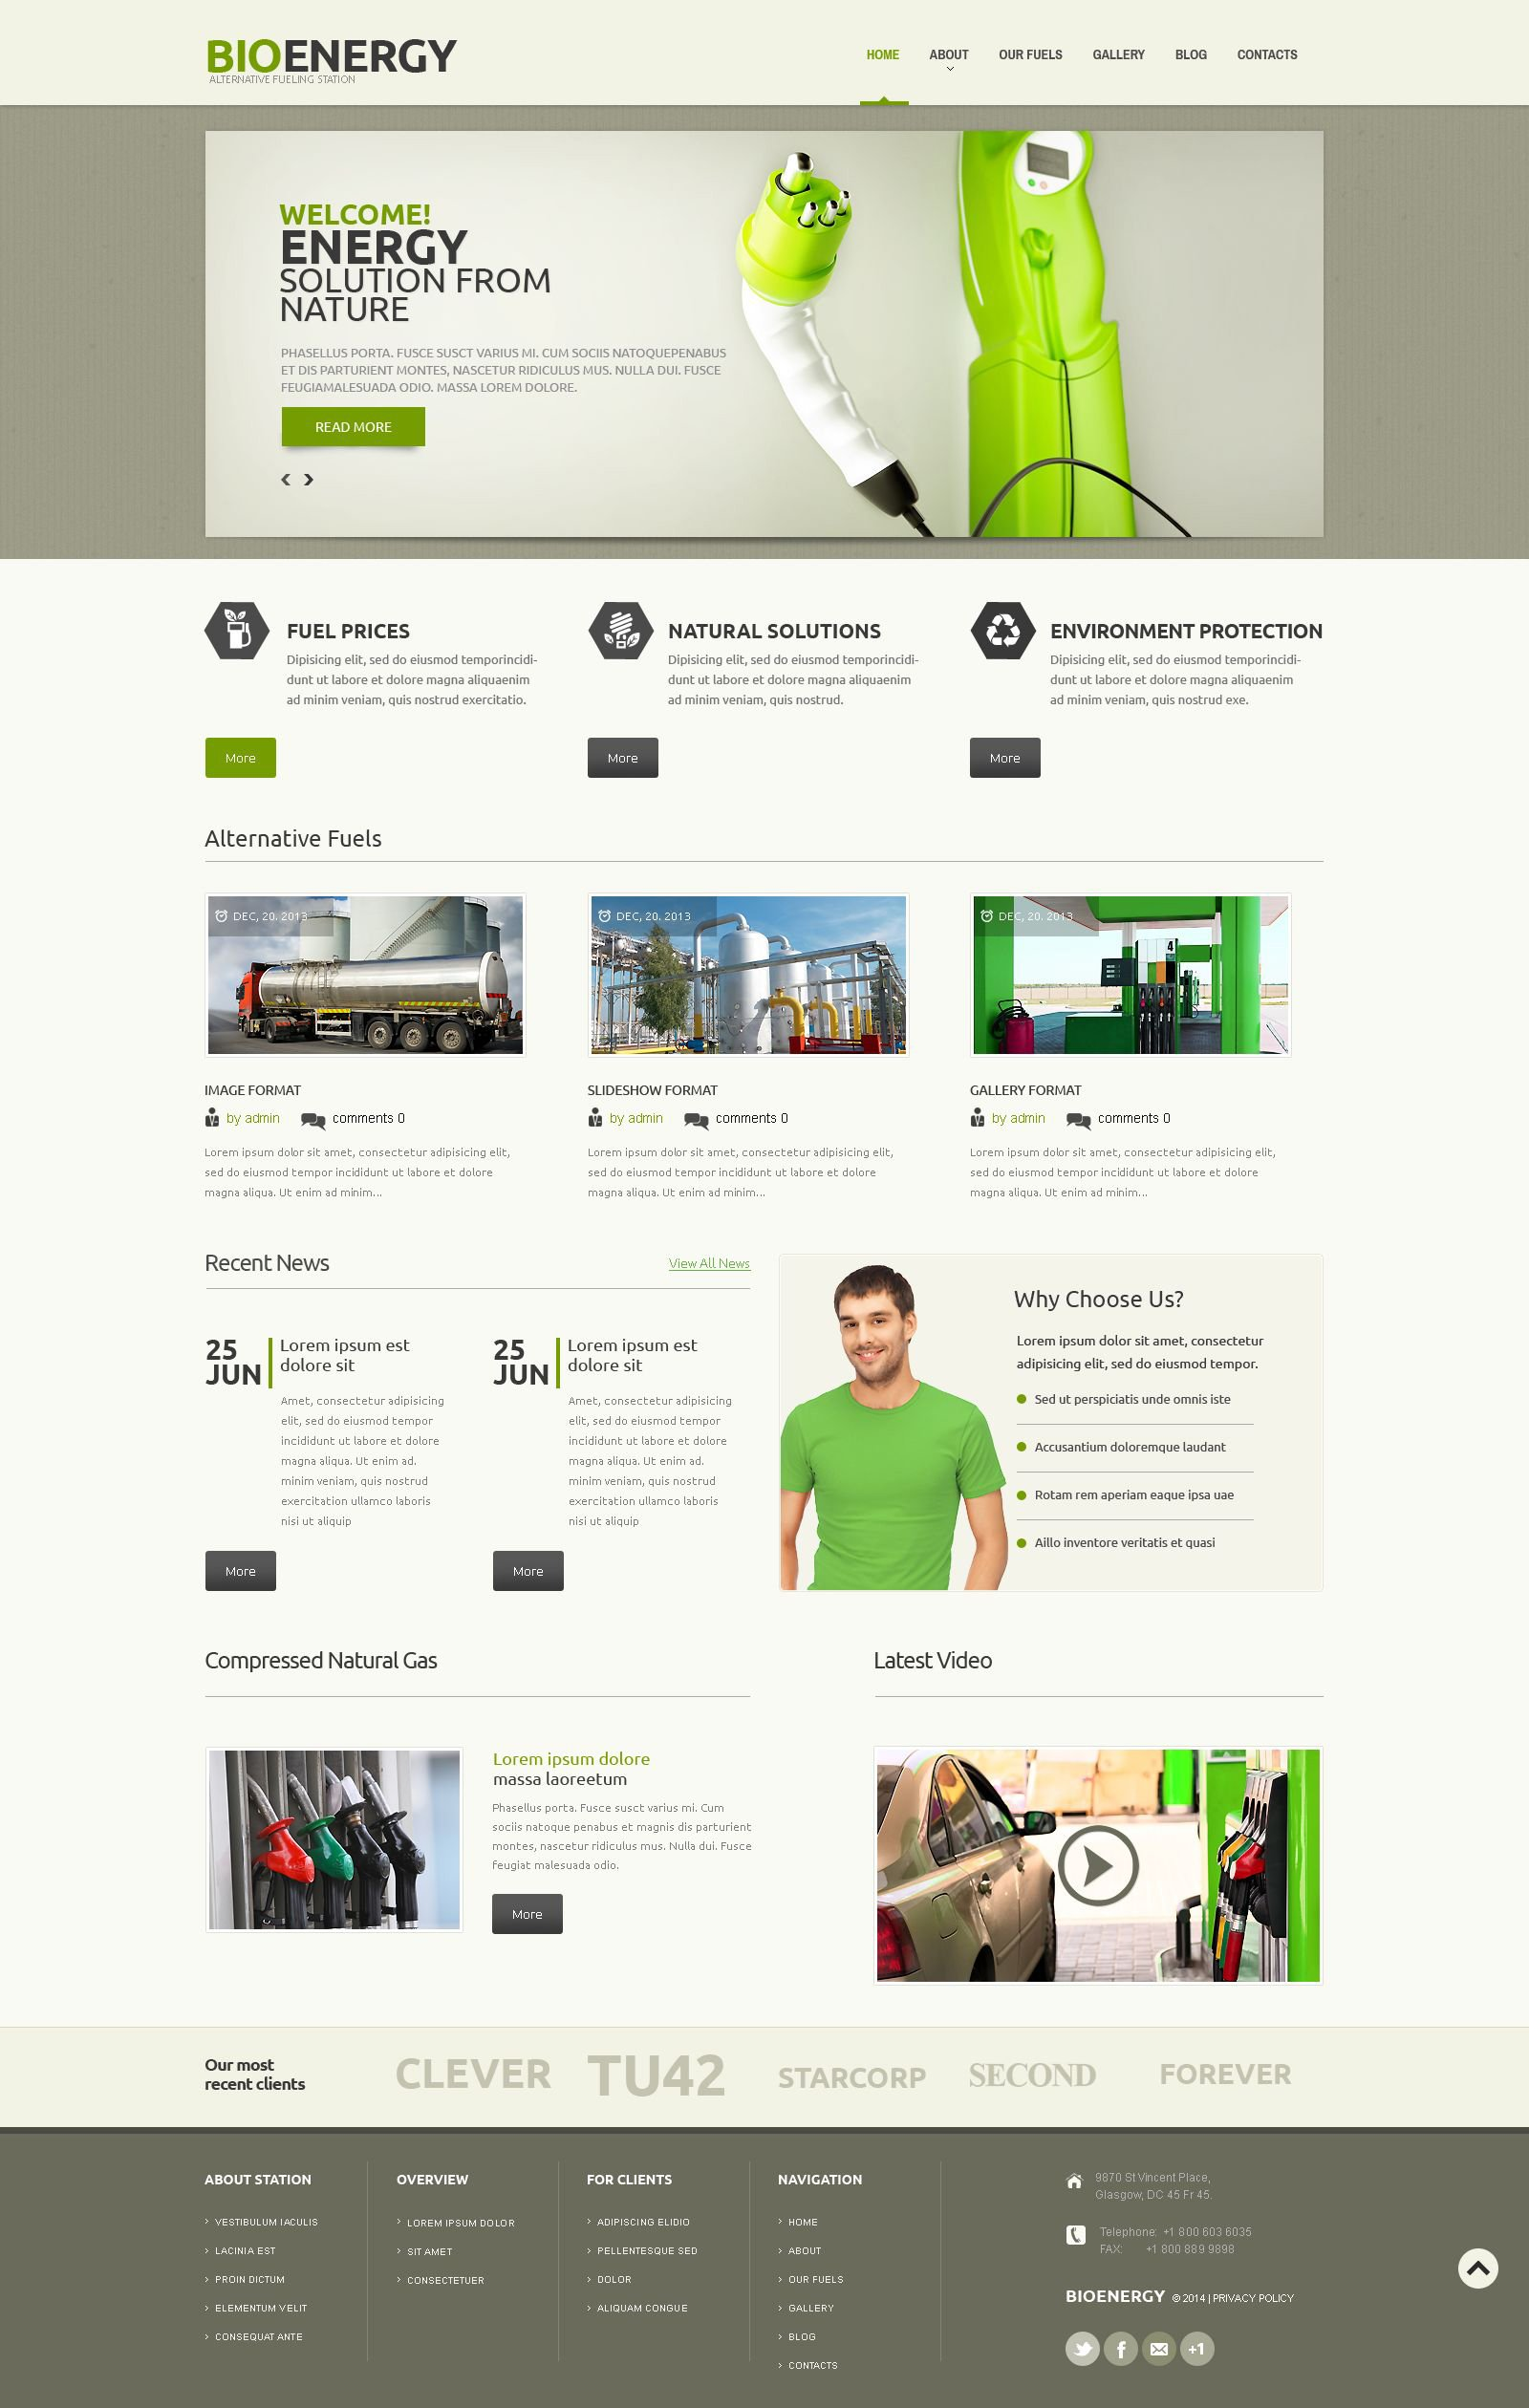 The Bio Energy WordPress Design 53431, one of the best WordPress themes of its kind (most popular, alternative power), also known as bio energy WordPress template, esolar WordPress template, solar energy WordPress template, company system WordPress template, ecological WordPress template, sun WordPress template, clean environment WordPress template, alternative WordPress template, warm WordPress template, heat and related with bio energy, esolar, solar energy, company system, ecological, sun, clean environment, alternative, warm, heat, etc.